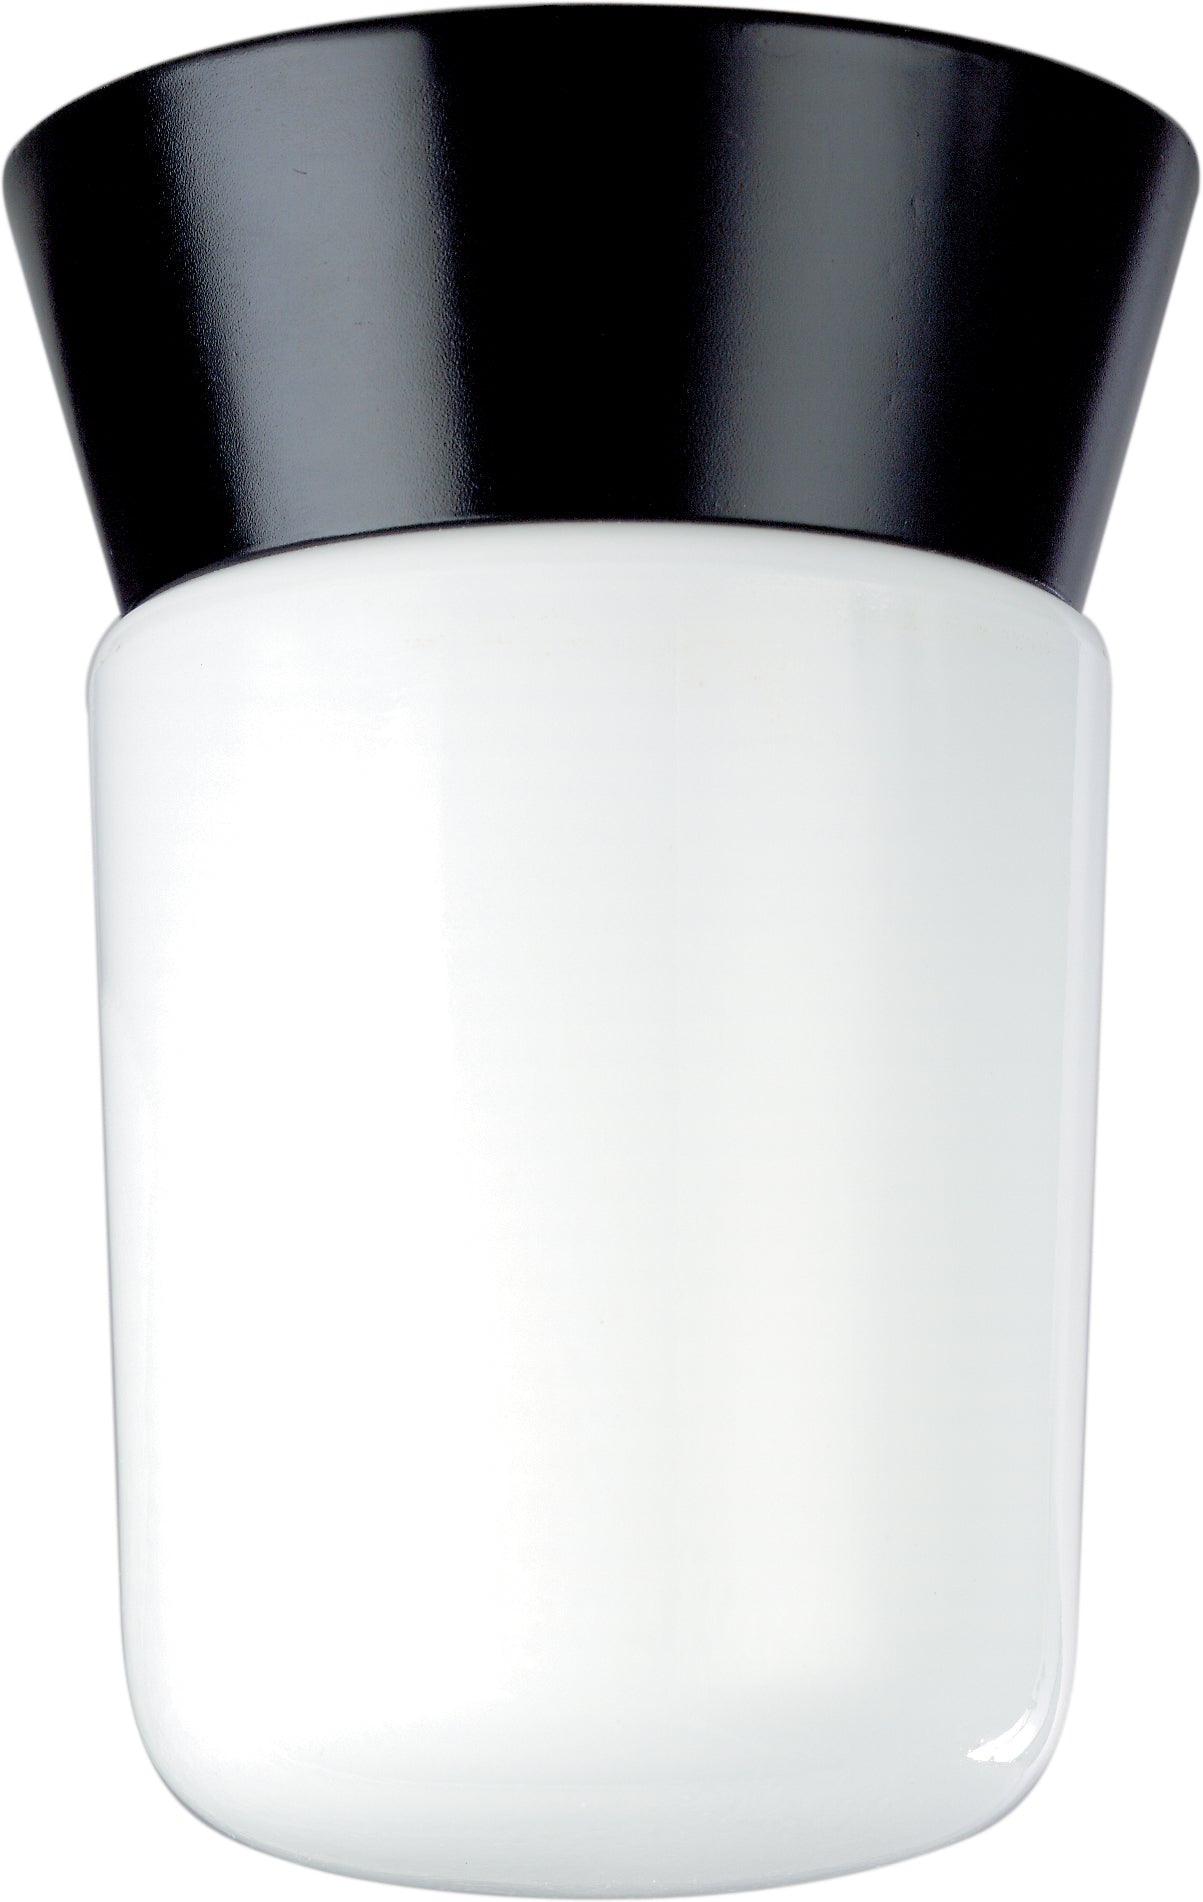 "Nuvo 1-Light 8"" Outdoor Ceiling Light w/ White Glass Cylinder in Black Finish"